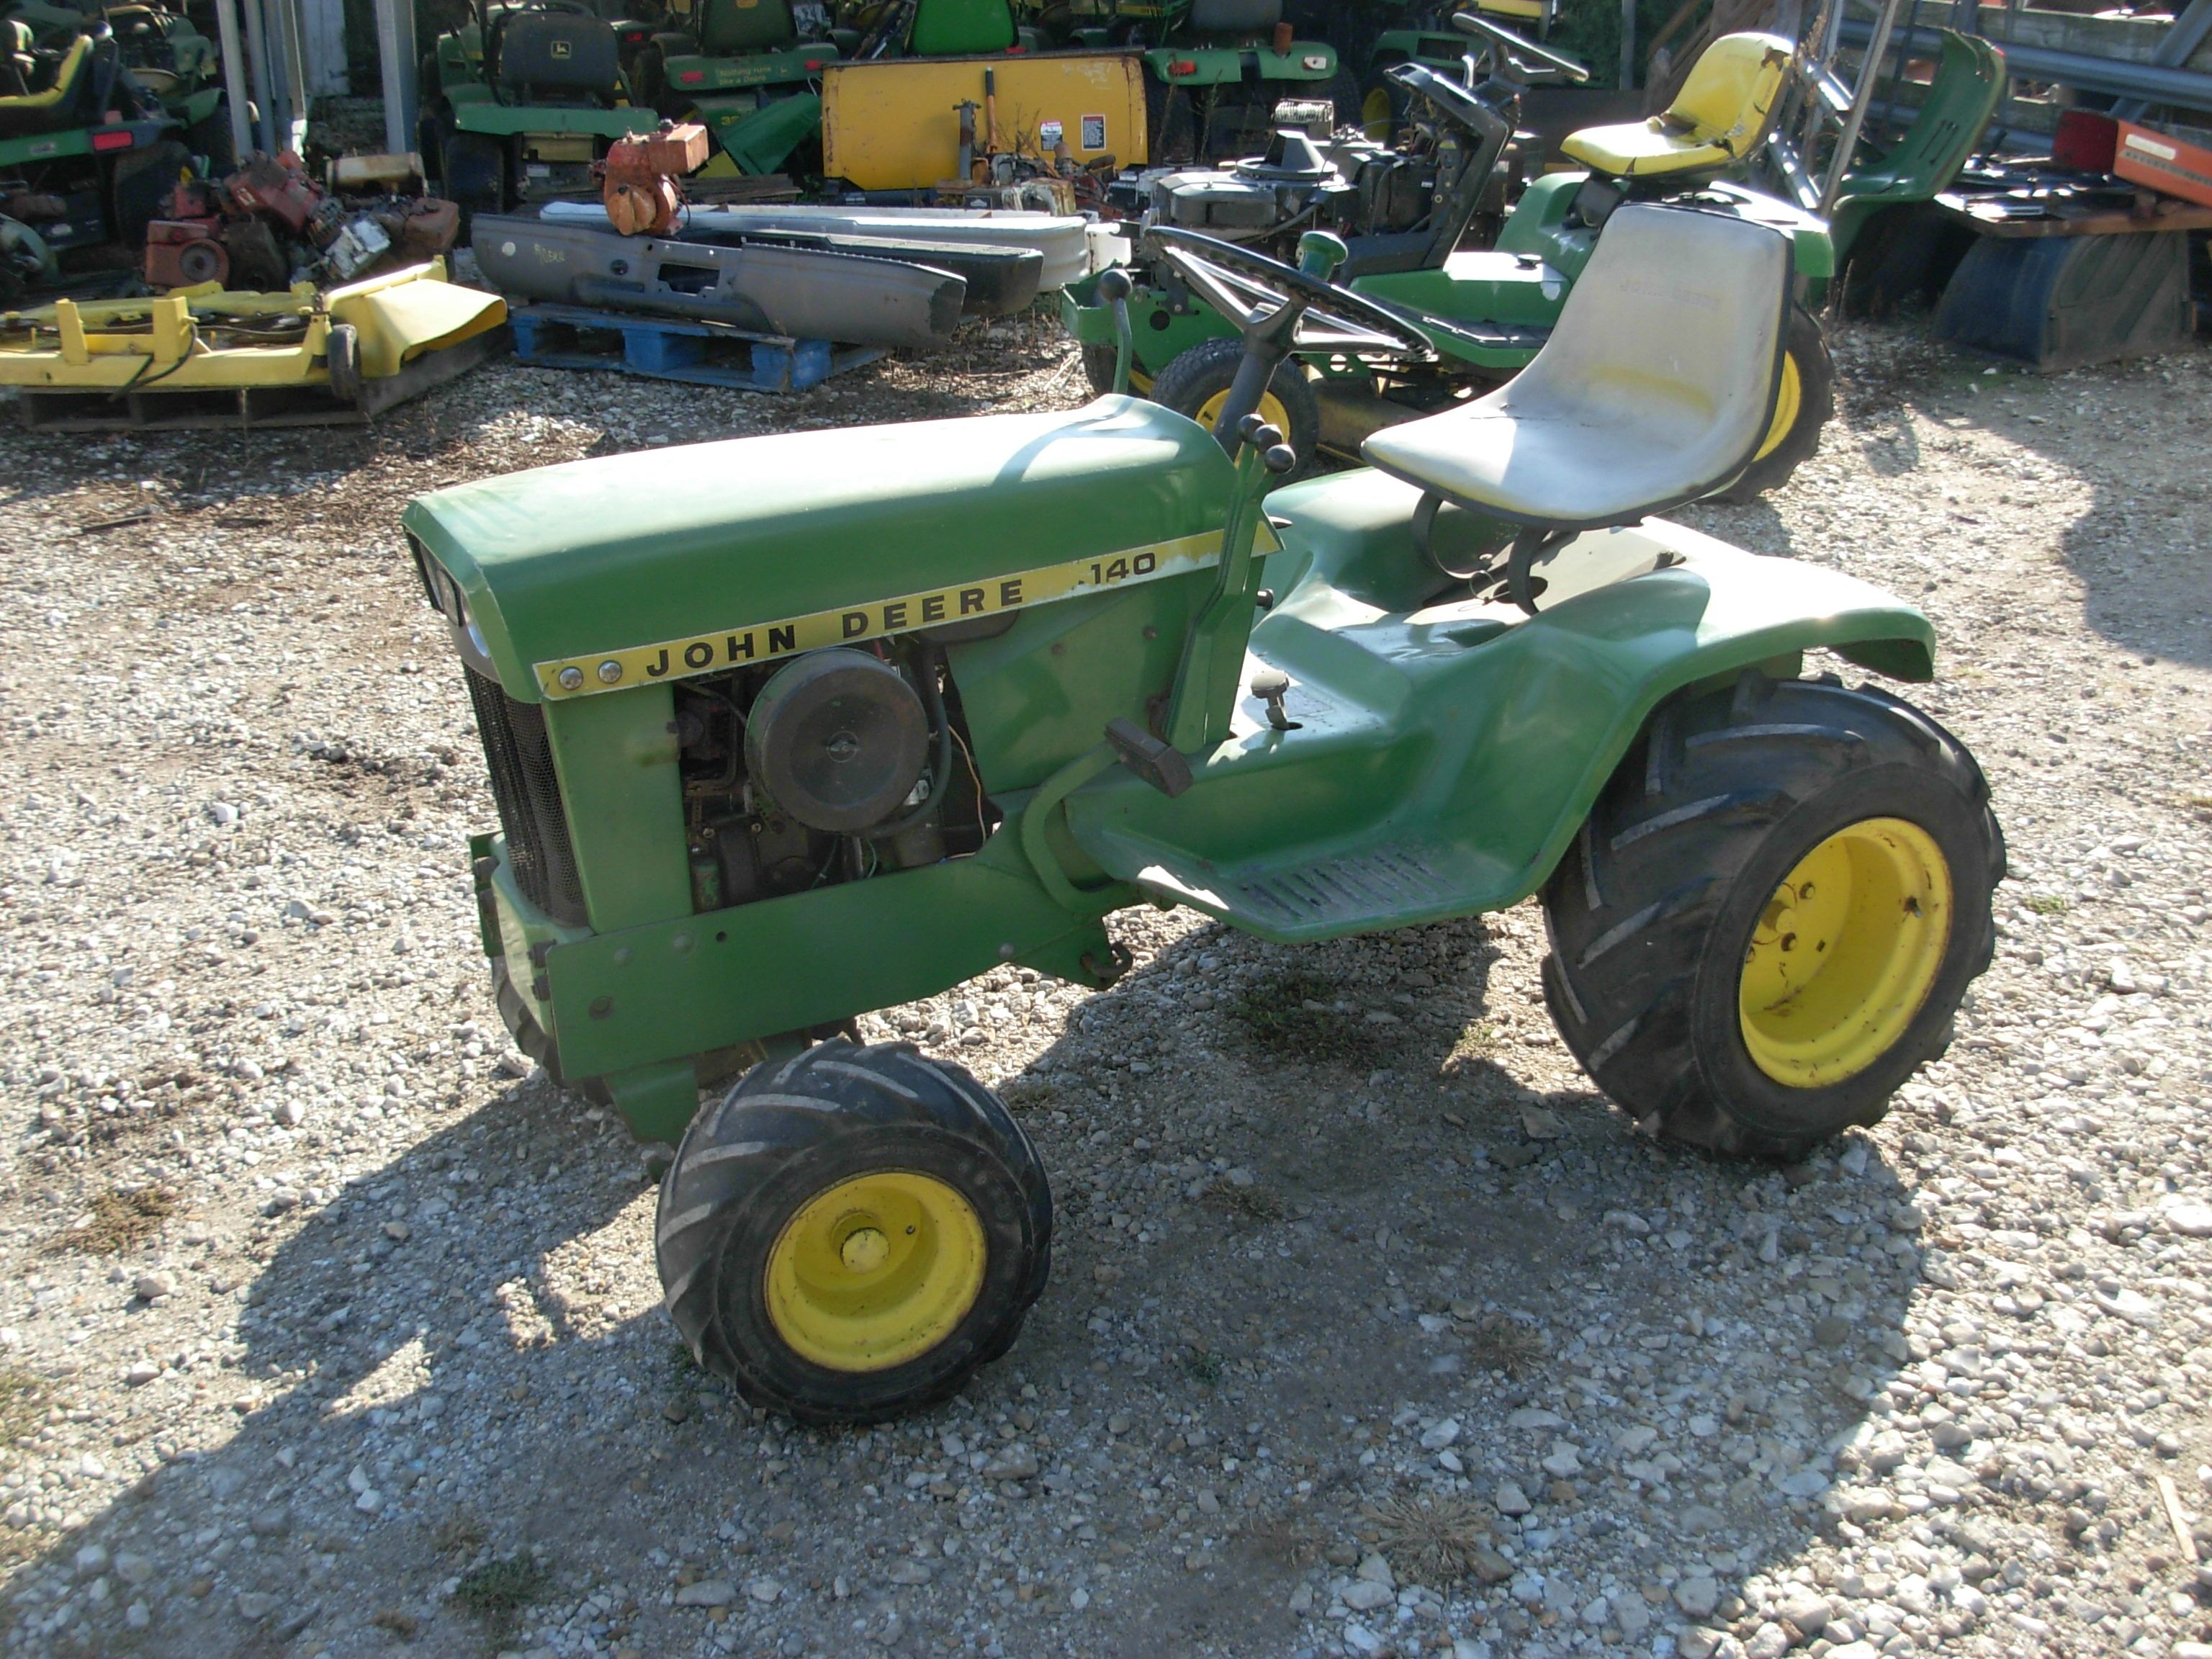 Used john deere tractors for sale j d lawn tractor for Garden equipment for sale